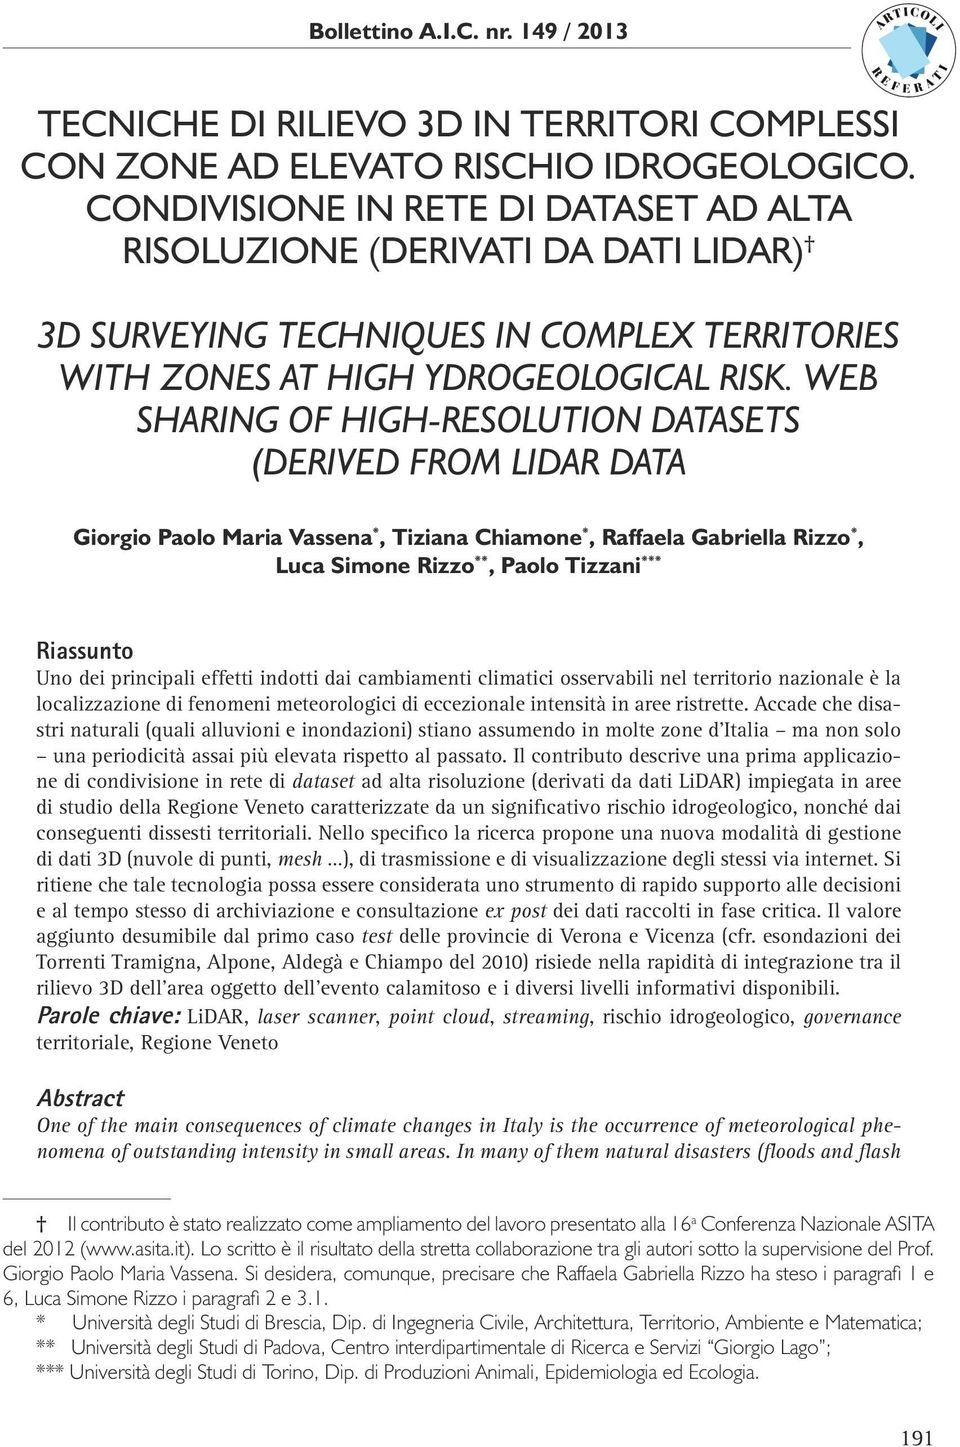 Web sharing of high-resolution datasets (derived from LIDAR data Giorgio Paolo Maria Vassena *, Tiziana Chiamone *, Raffaela Gabriella Rizzo *, Luca Simone Rizzo **, Paolo Tizzani *** Riassunto Uno